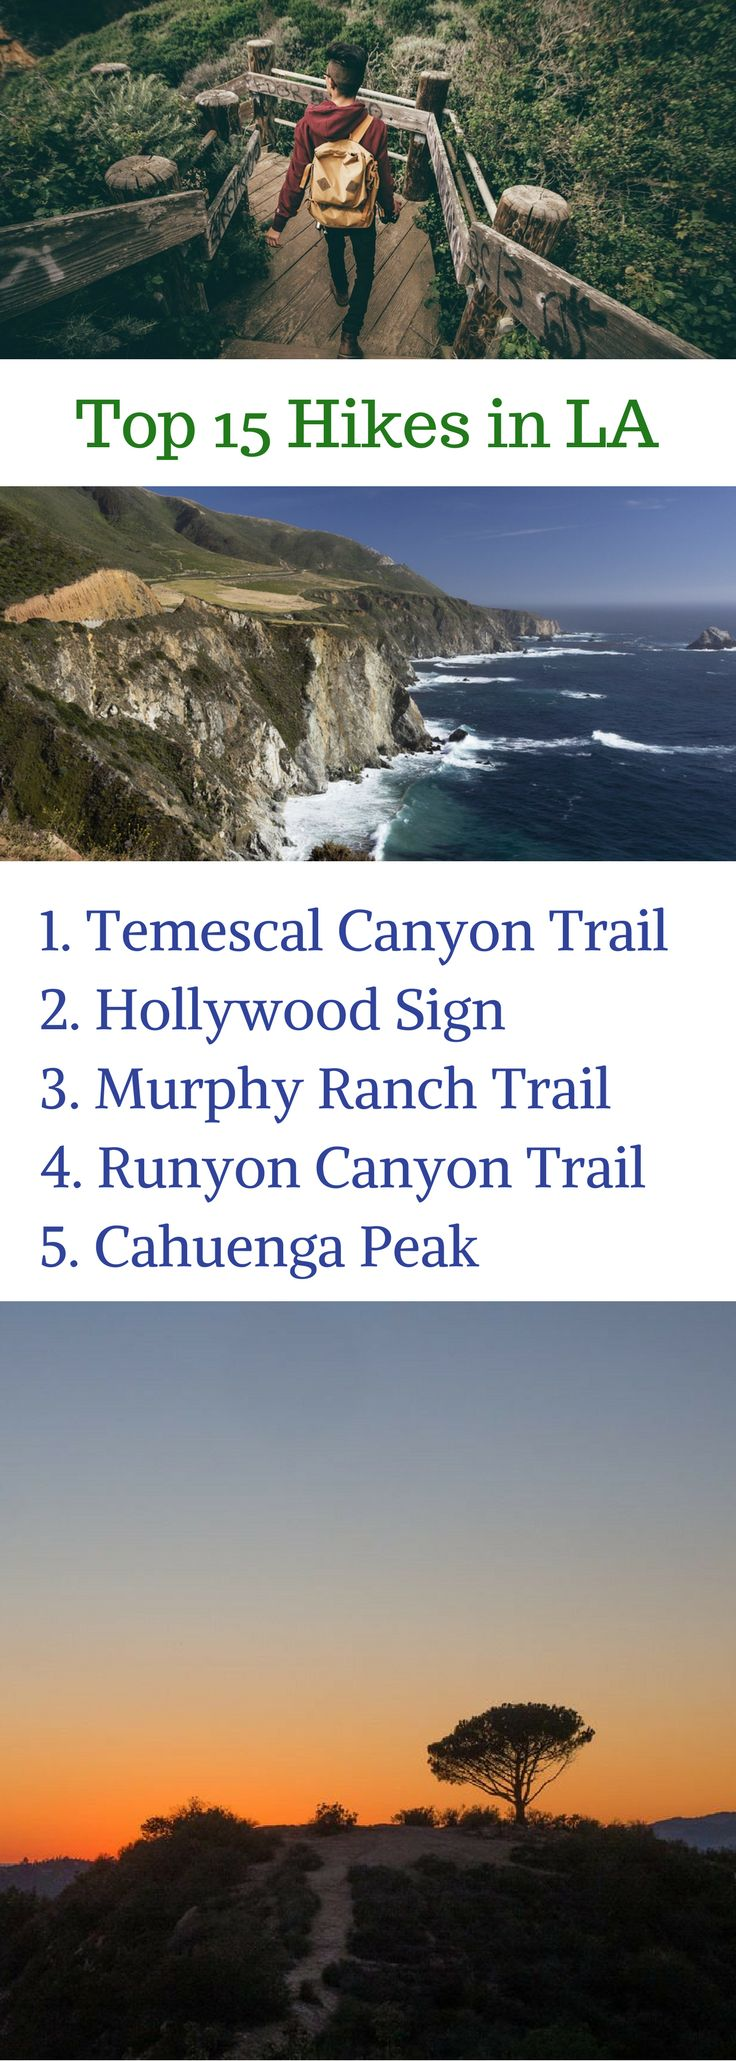 Looking for the best hikes in the LA area? From the Santa Monica mountains to the rolling Hollywood Hills, here are the top 15 hikes over all of Los Angeles! Click through to read about each hike, and choose one for your next adventure :)